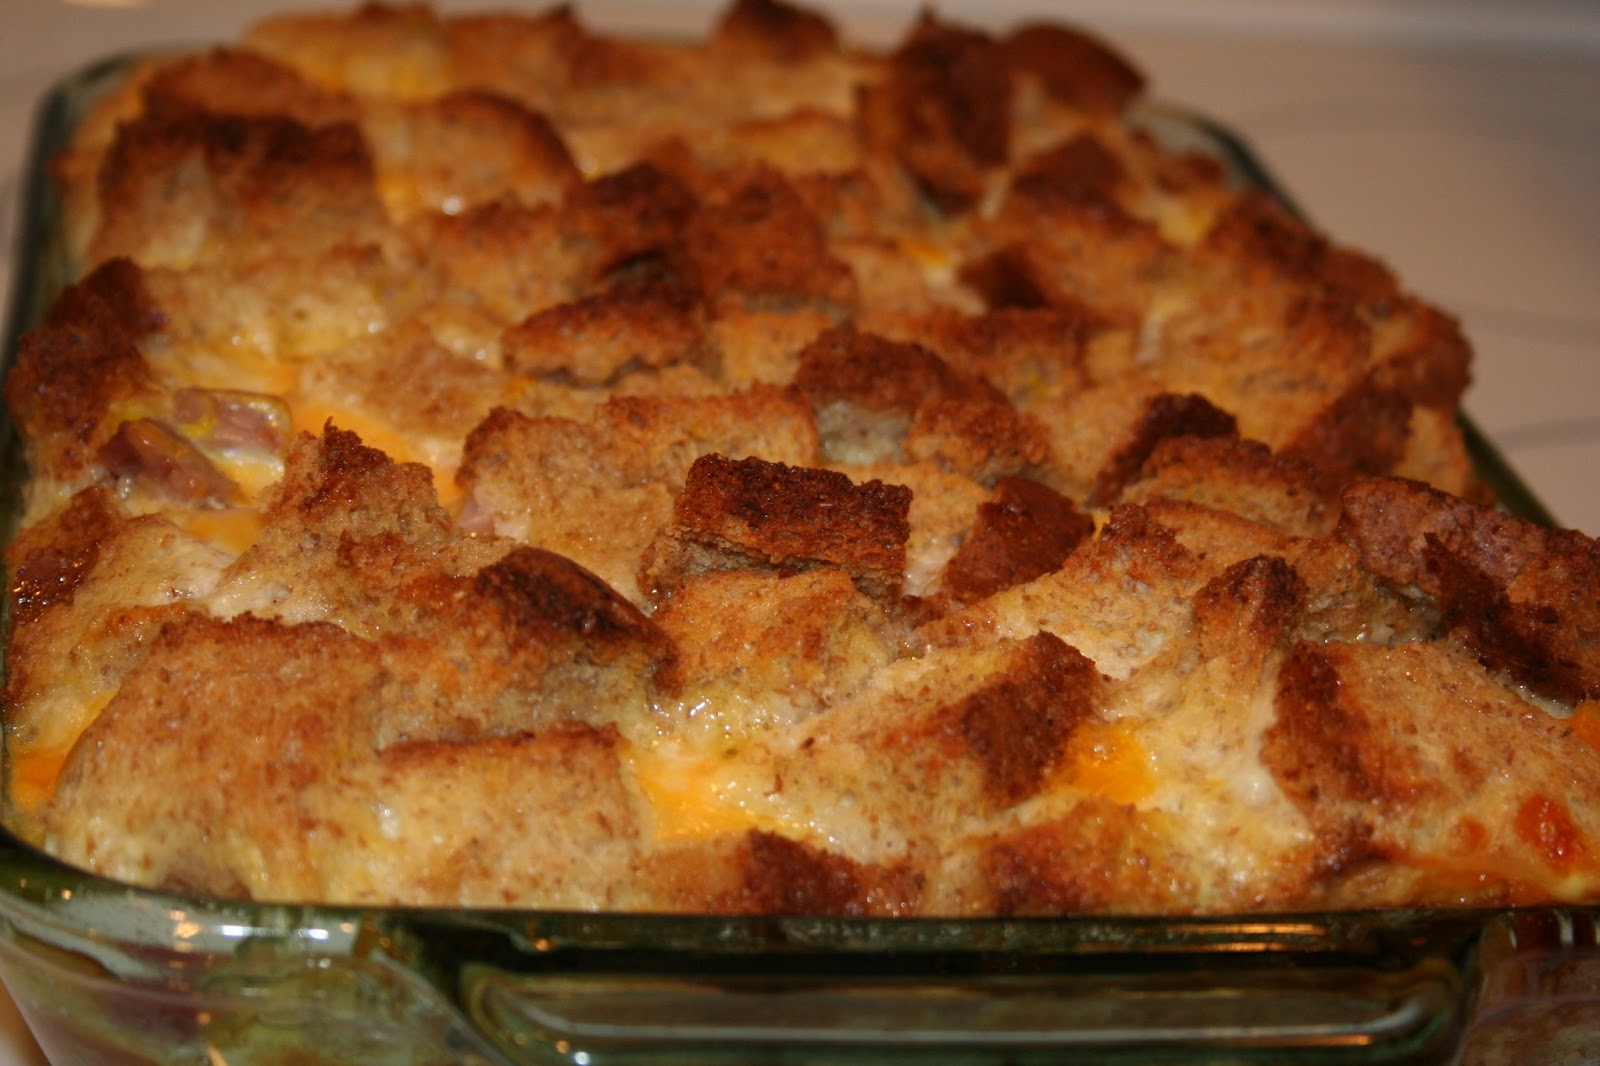 Tricia's Simply Tasteful Recipes: Ham and Cheese Egg Bake